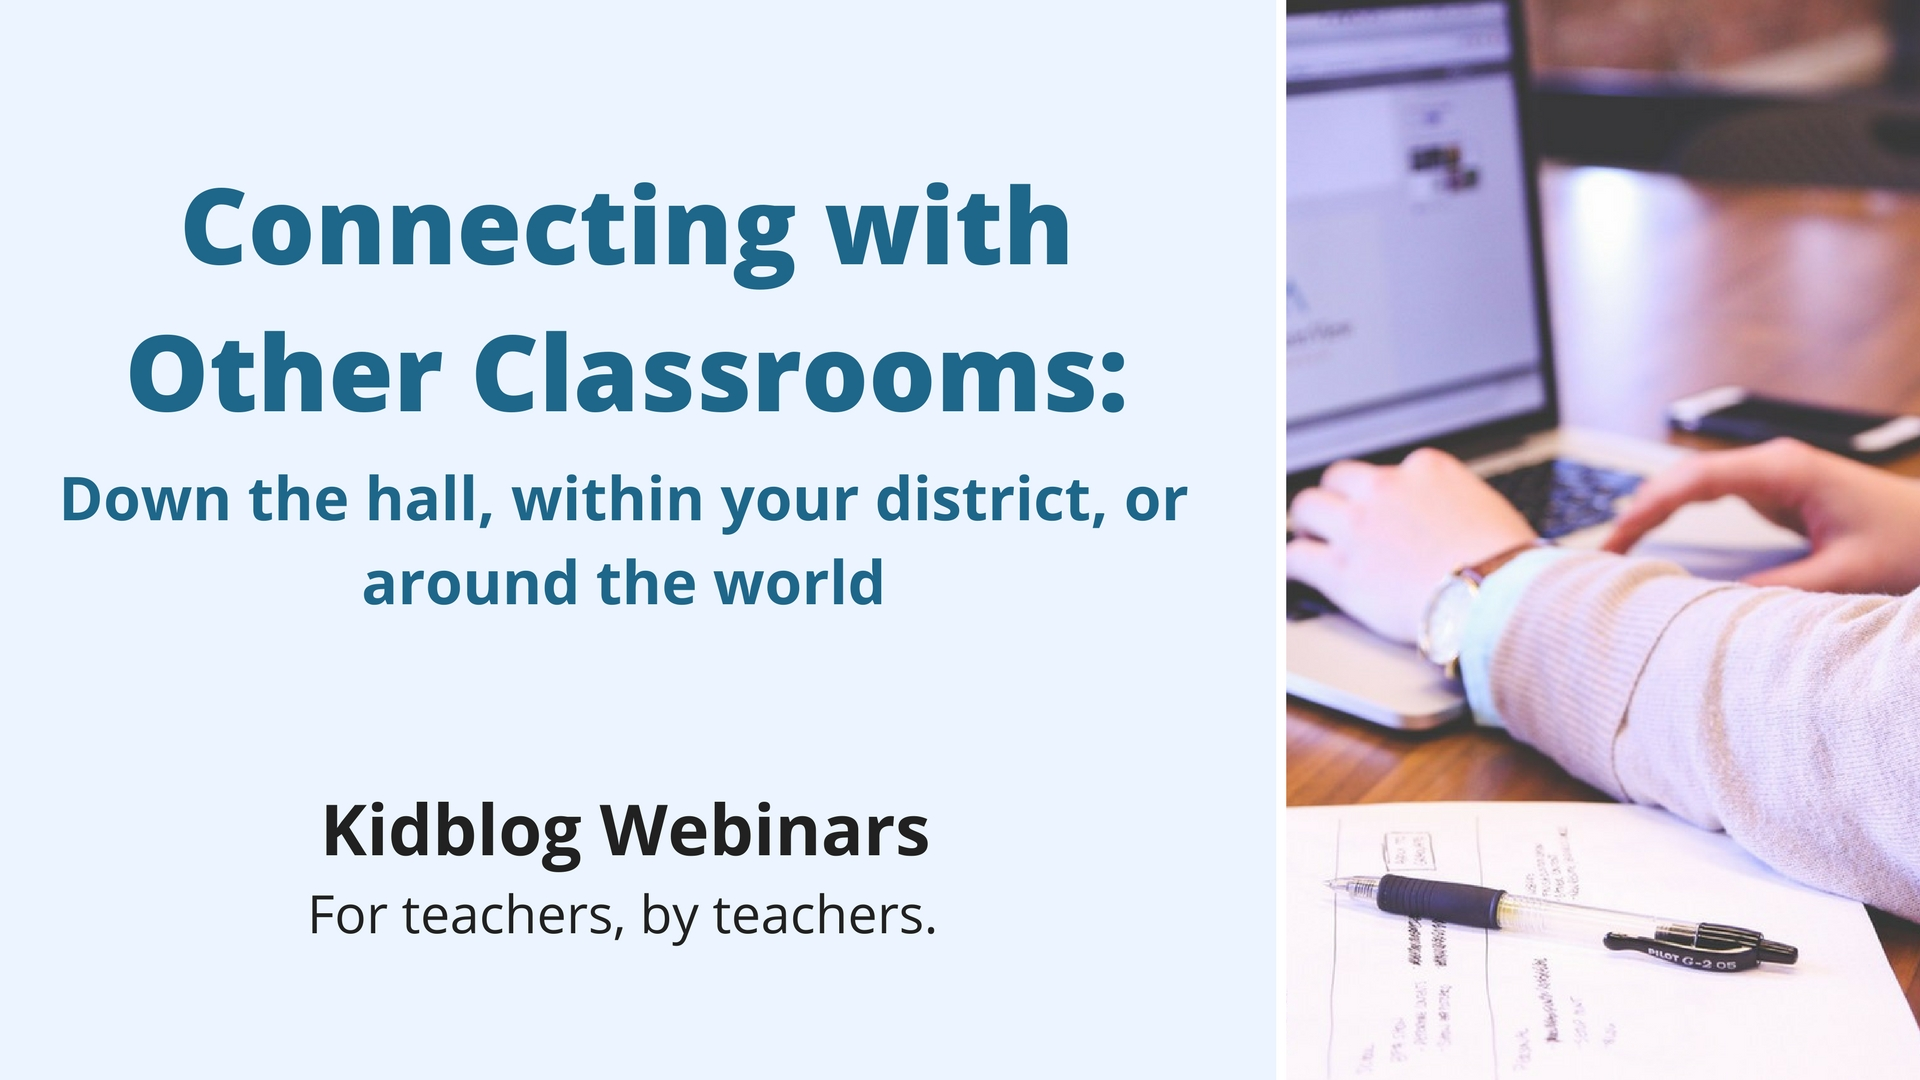 Webinar: Connecting with other classrooms: Down the hall, within your district, or around the world